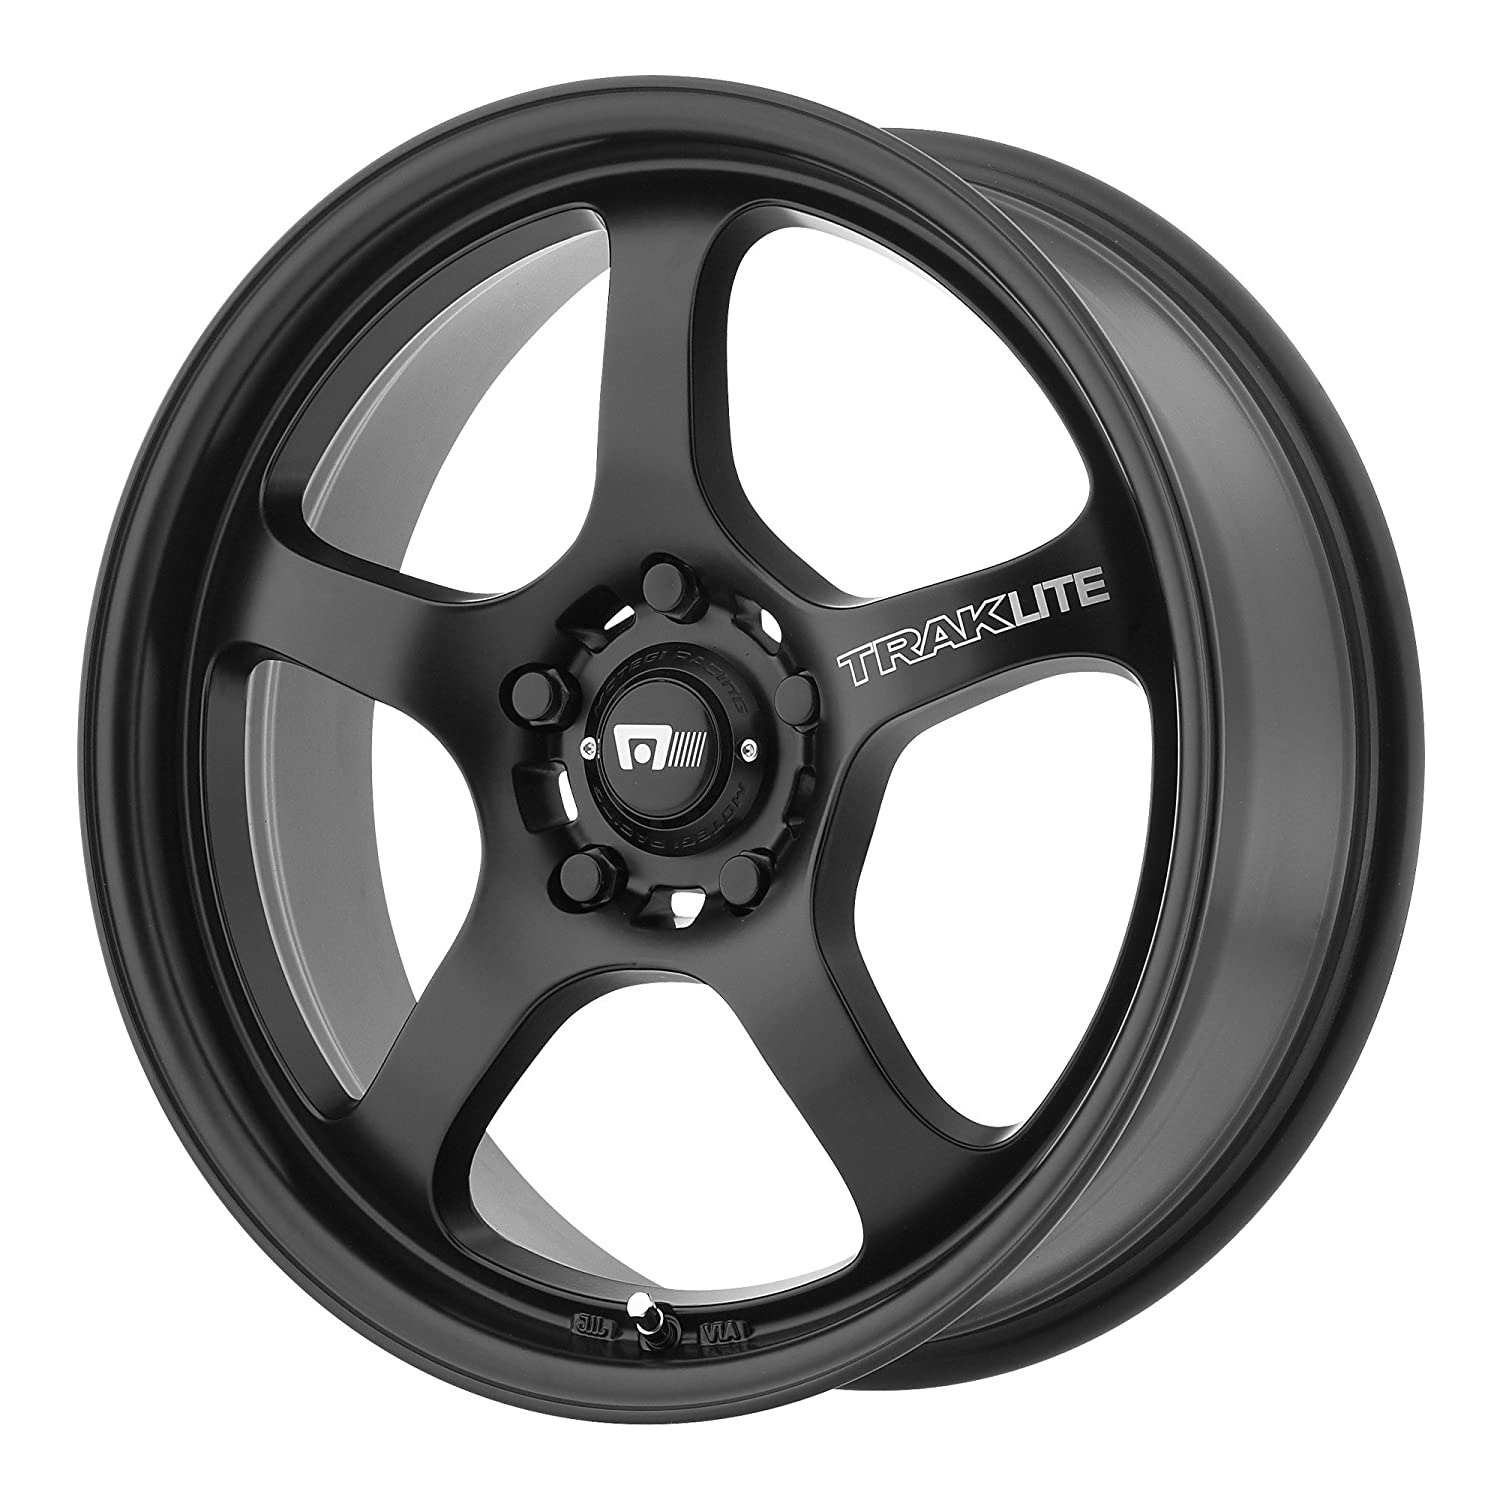 Amazon Motegi Racing MR131 Traklite Satin Black Wheel 17x8